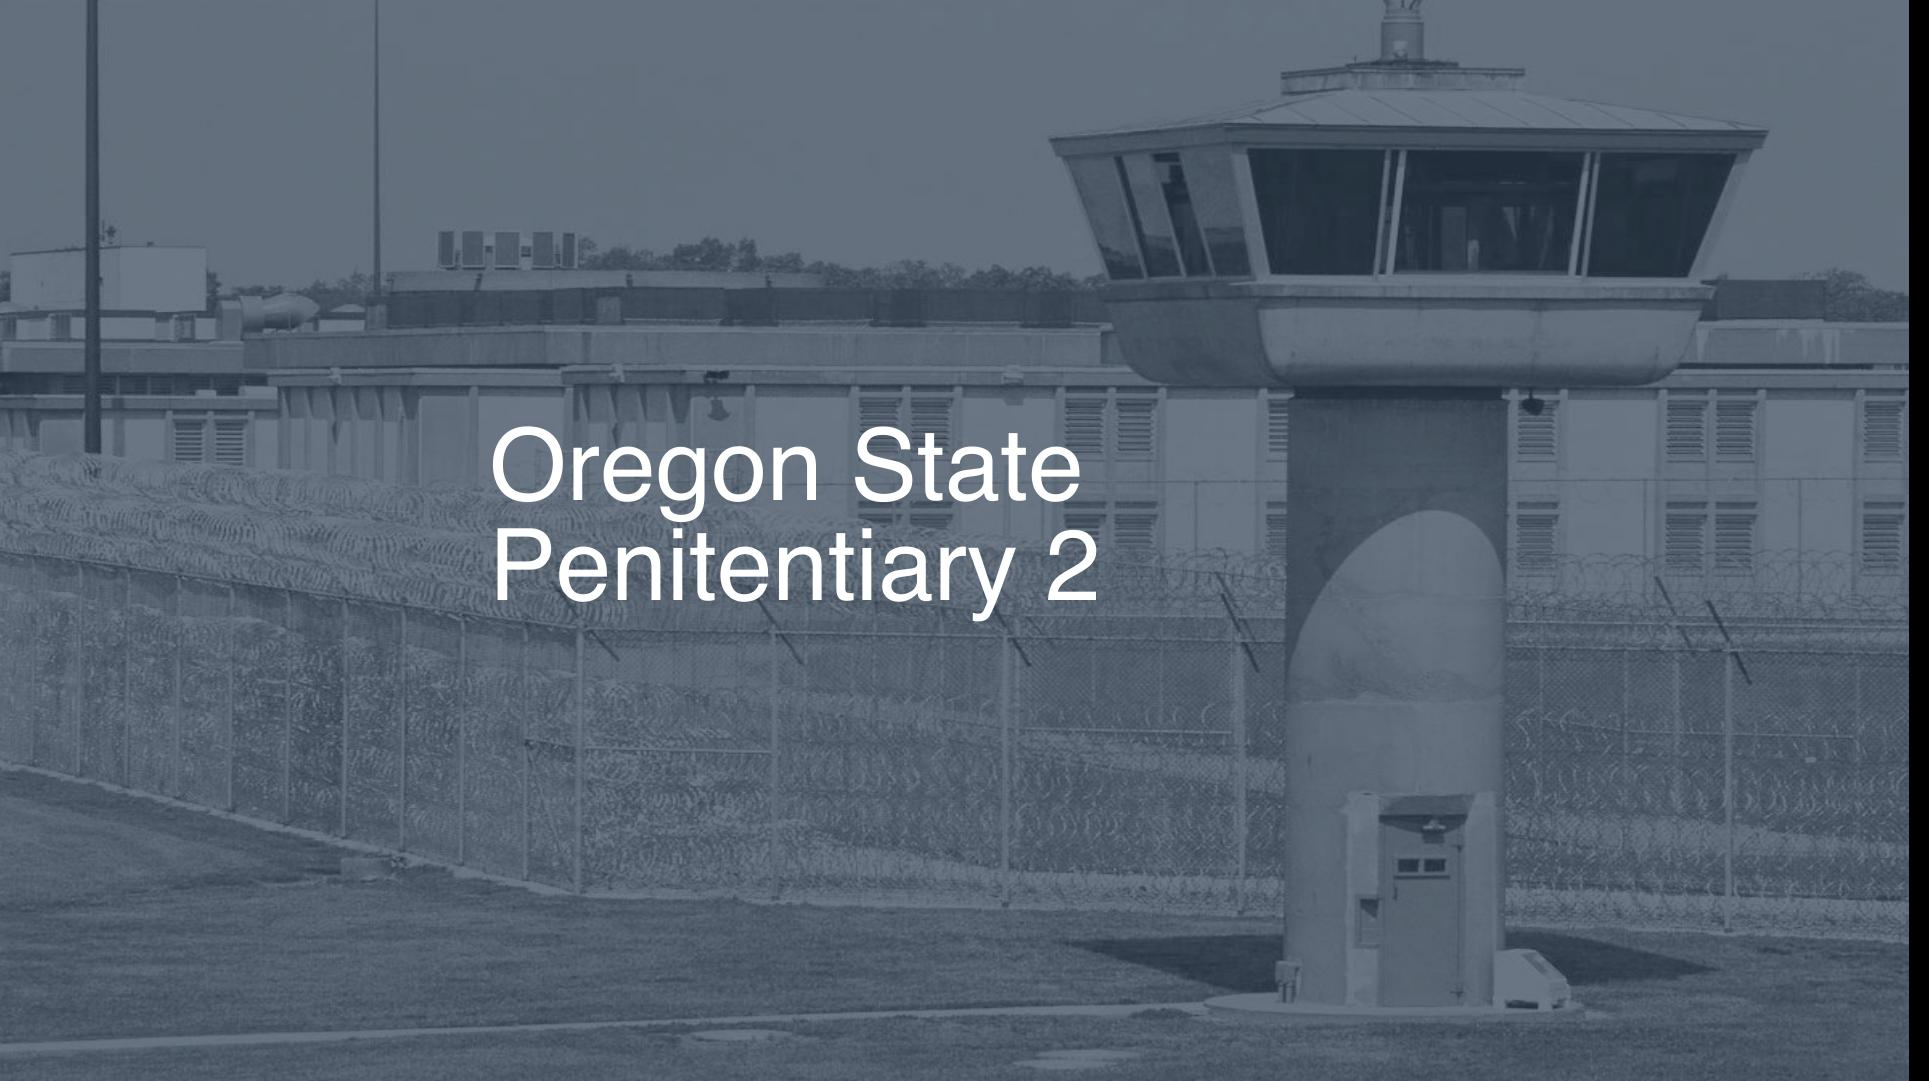 Oregon State Penitentiary correctional facility picture